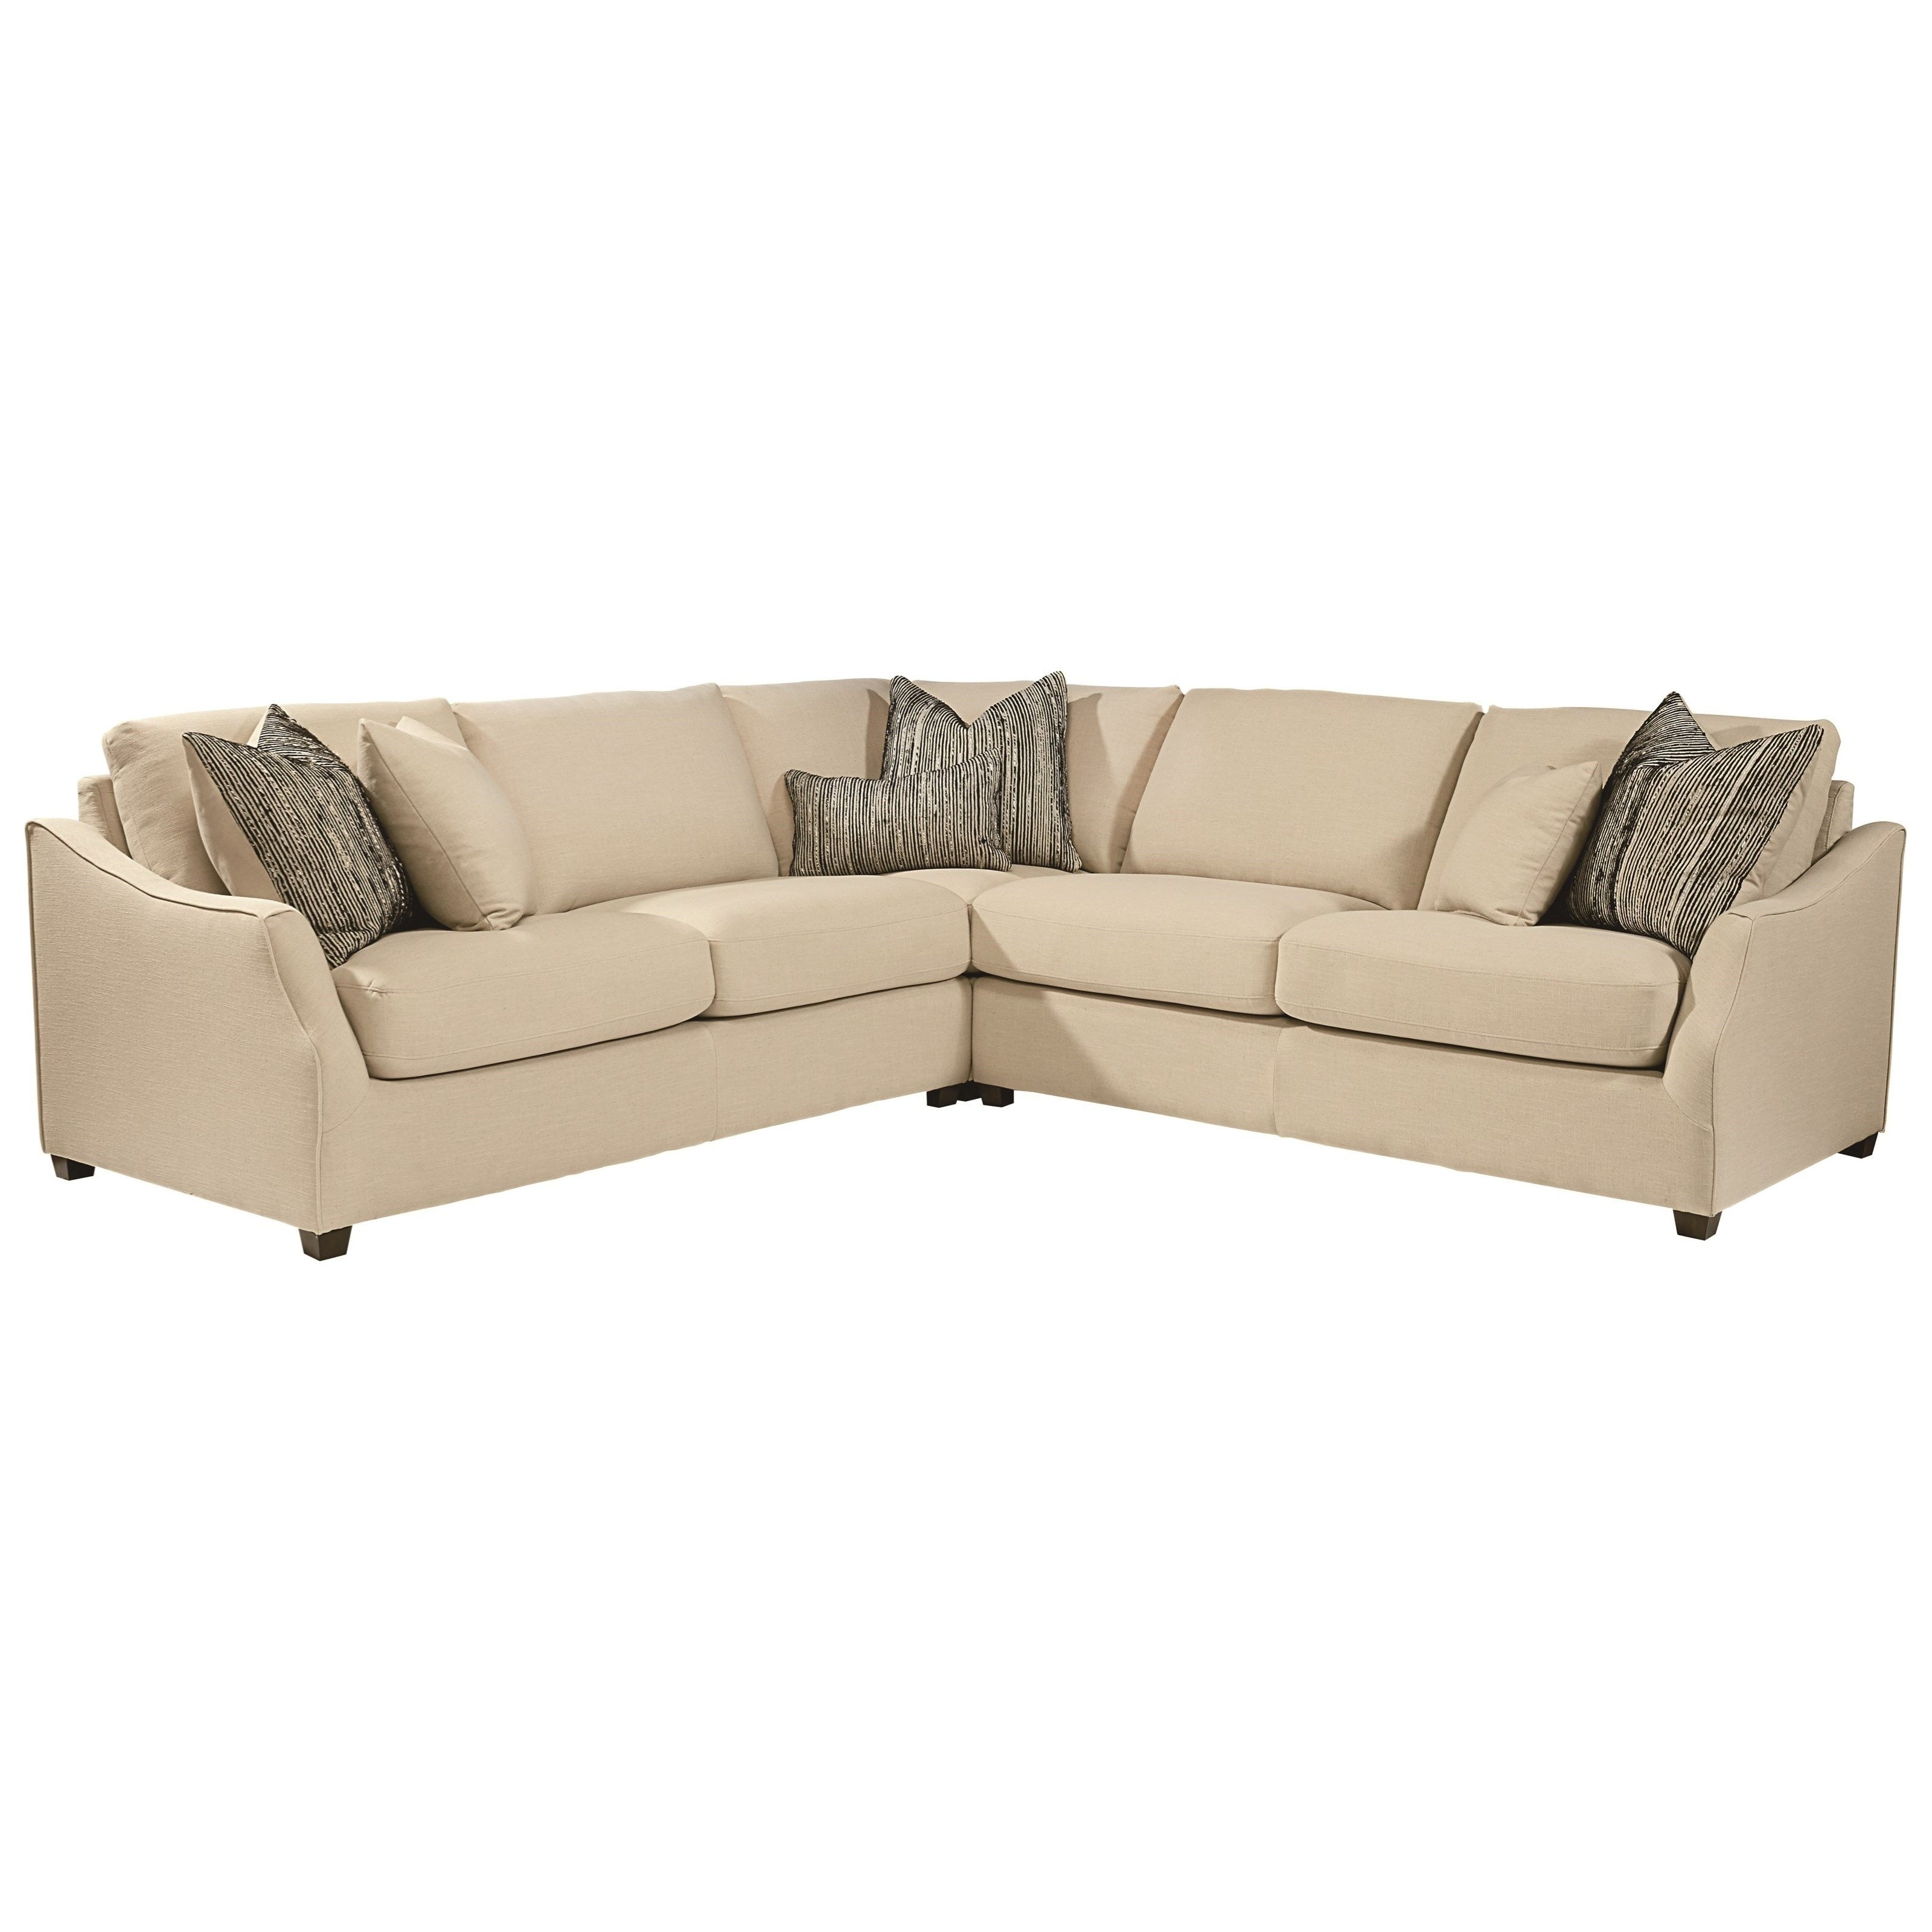 Most Recently Released Minneapolis Sectional Sofas Pertaining To Magnolia Homejoanna Gaines Homestead Three Piece Sectional (View 15 of 20)